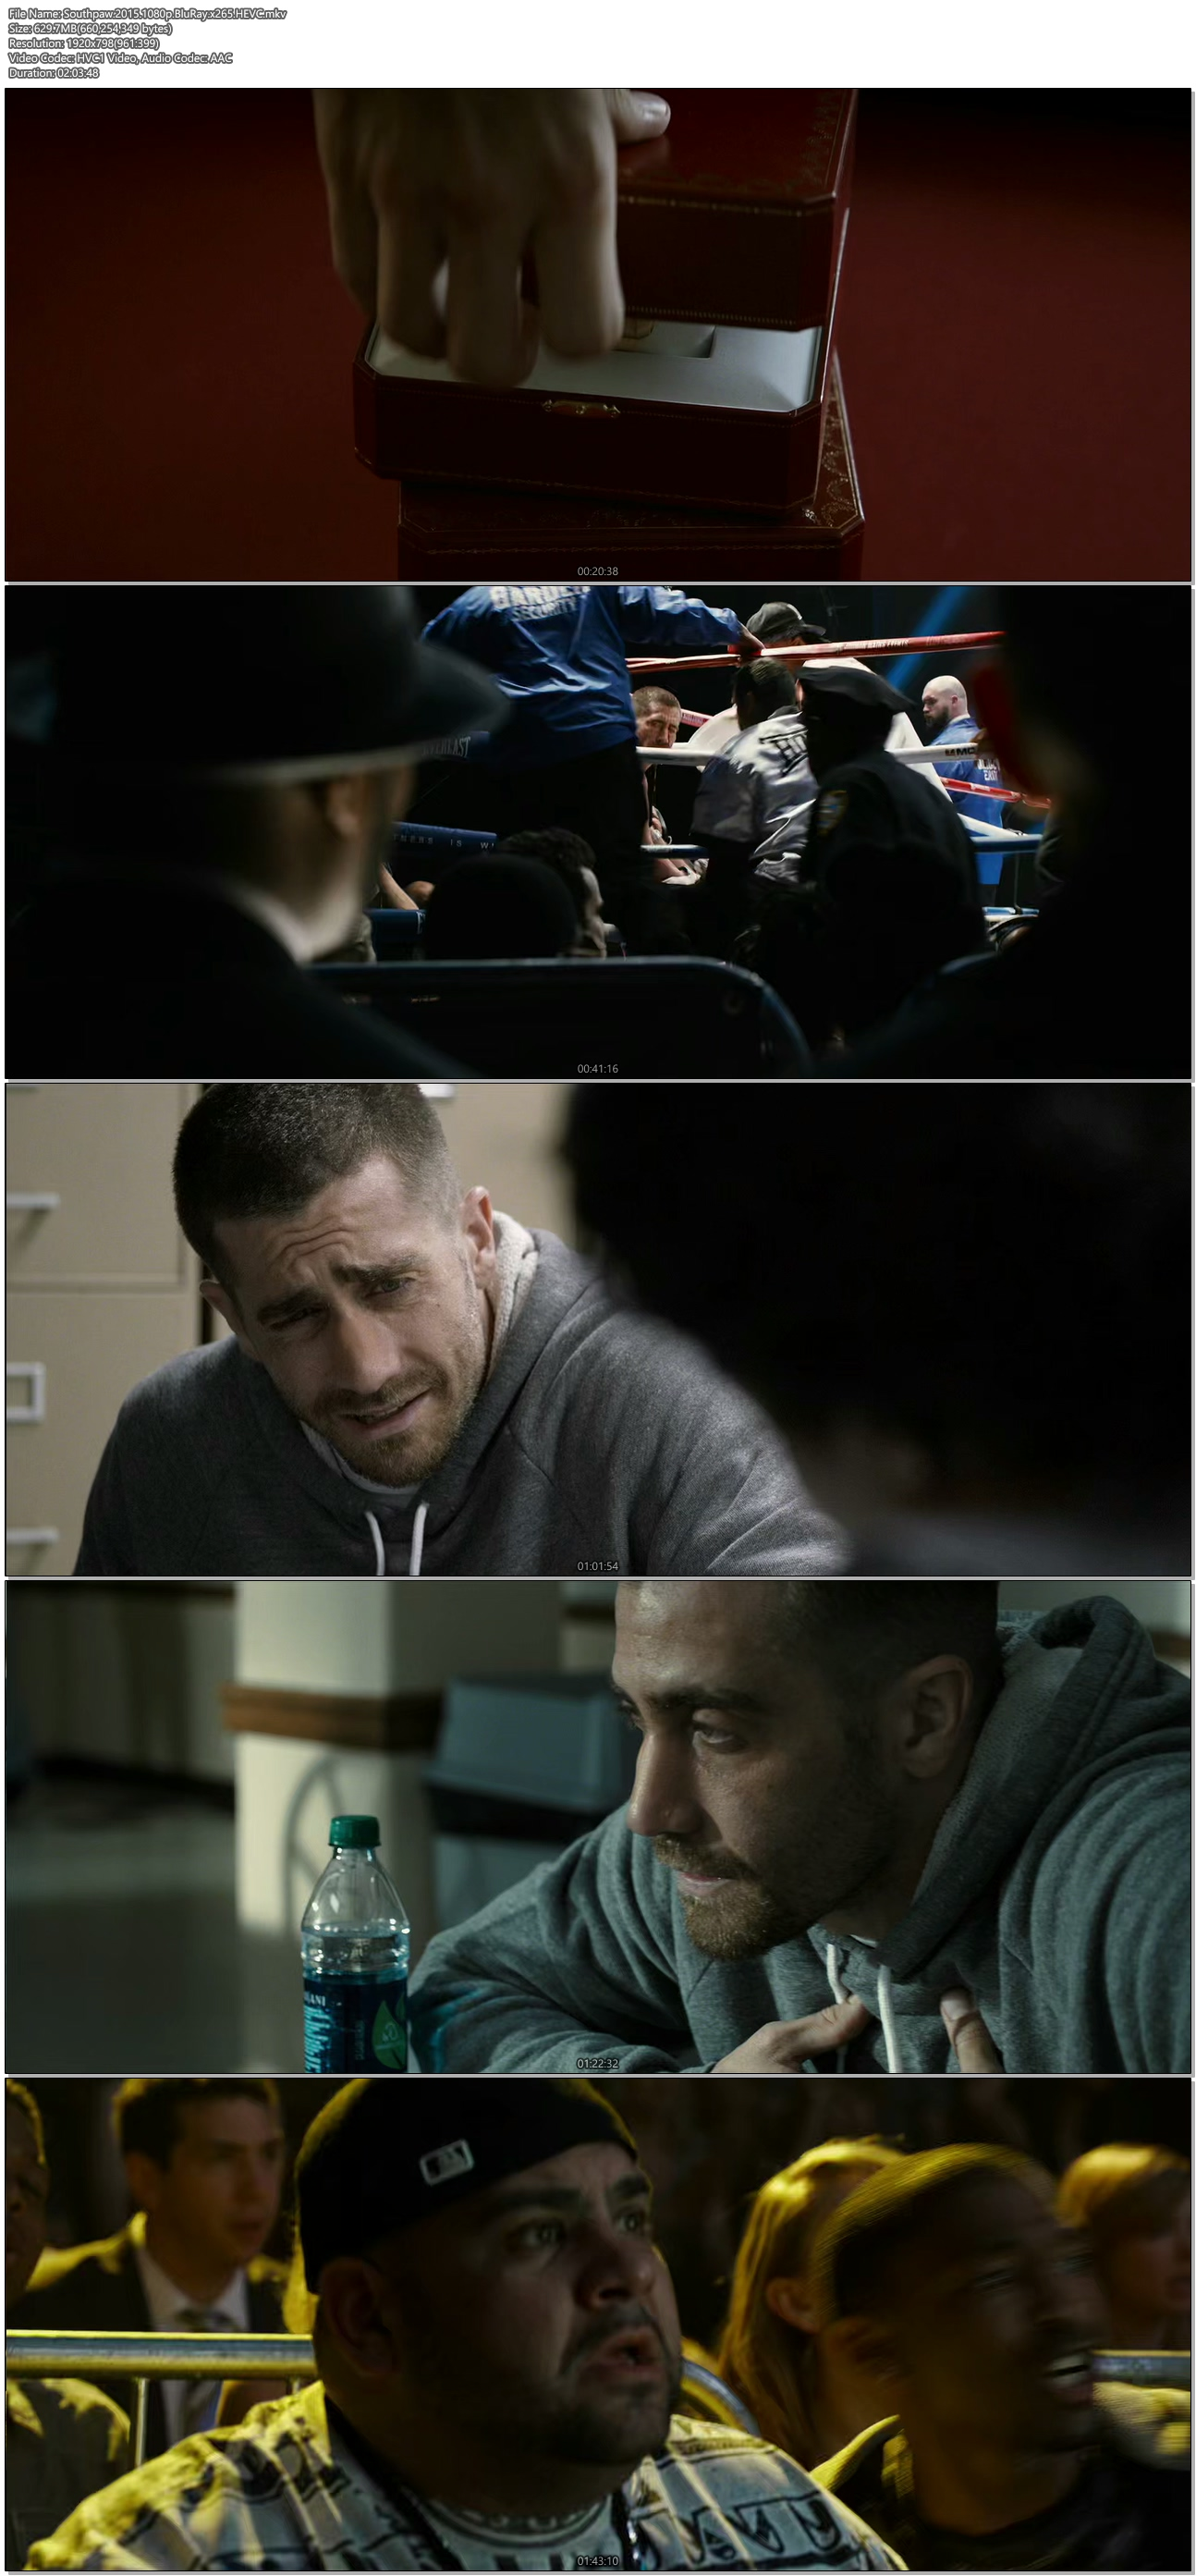 Southpaw (2015) 1080p HEVC BluRay x265 629 MB ...